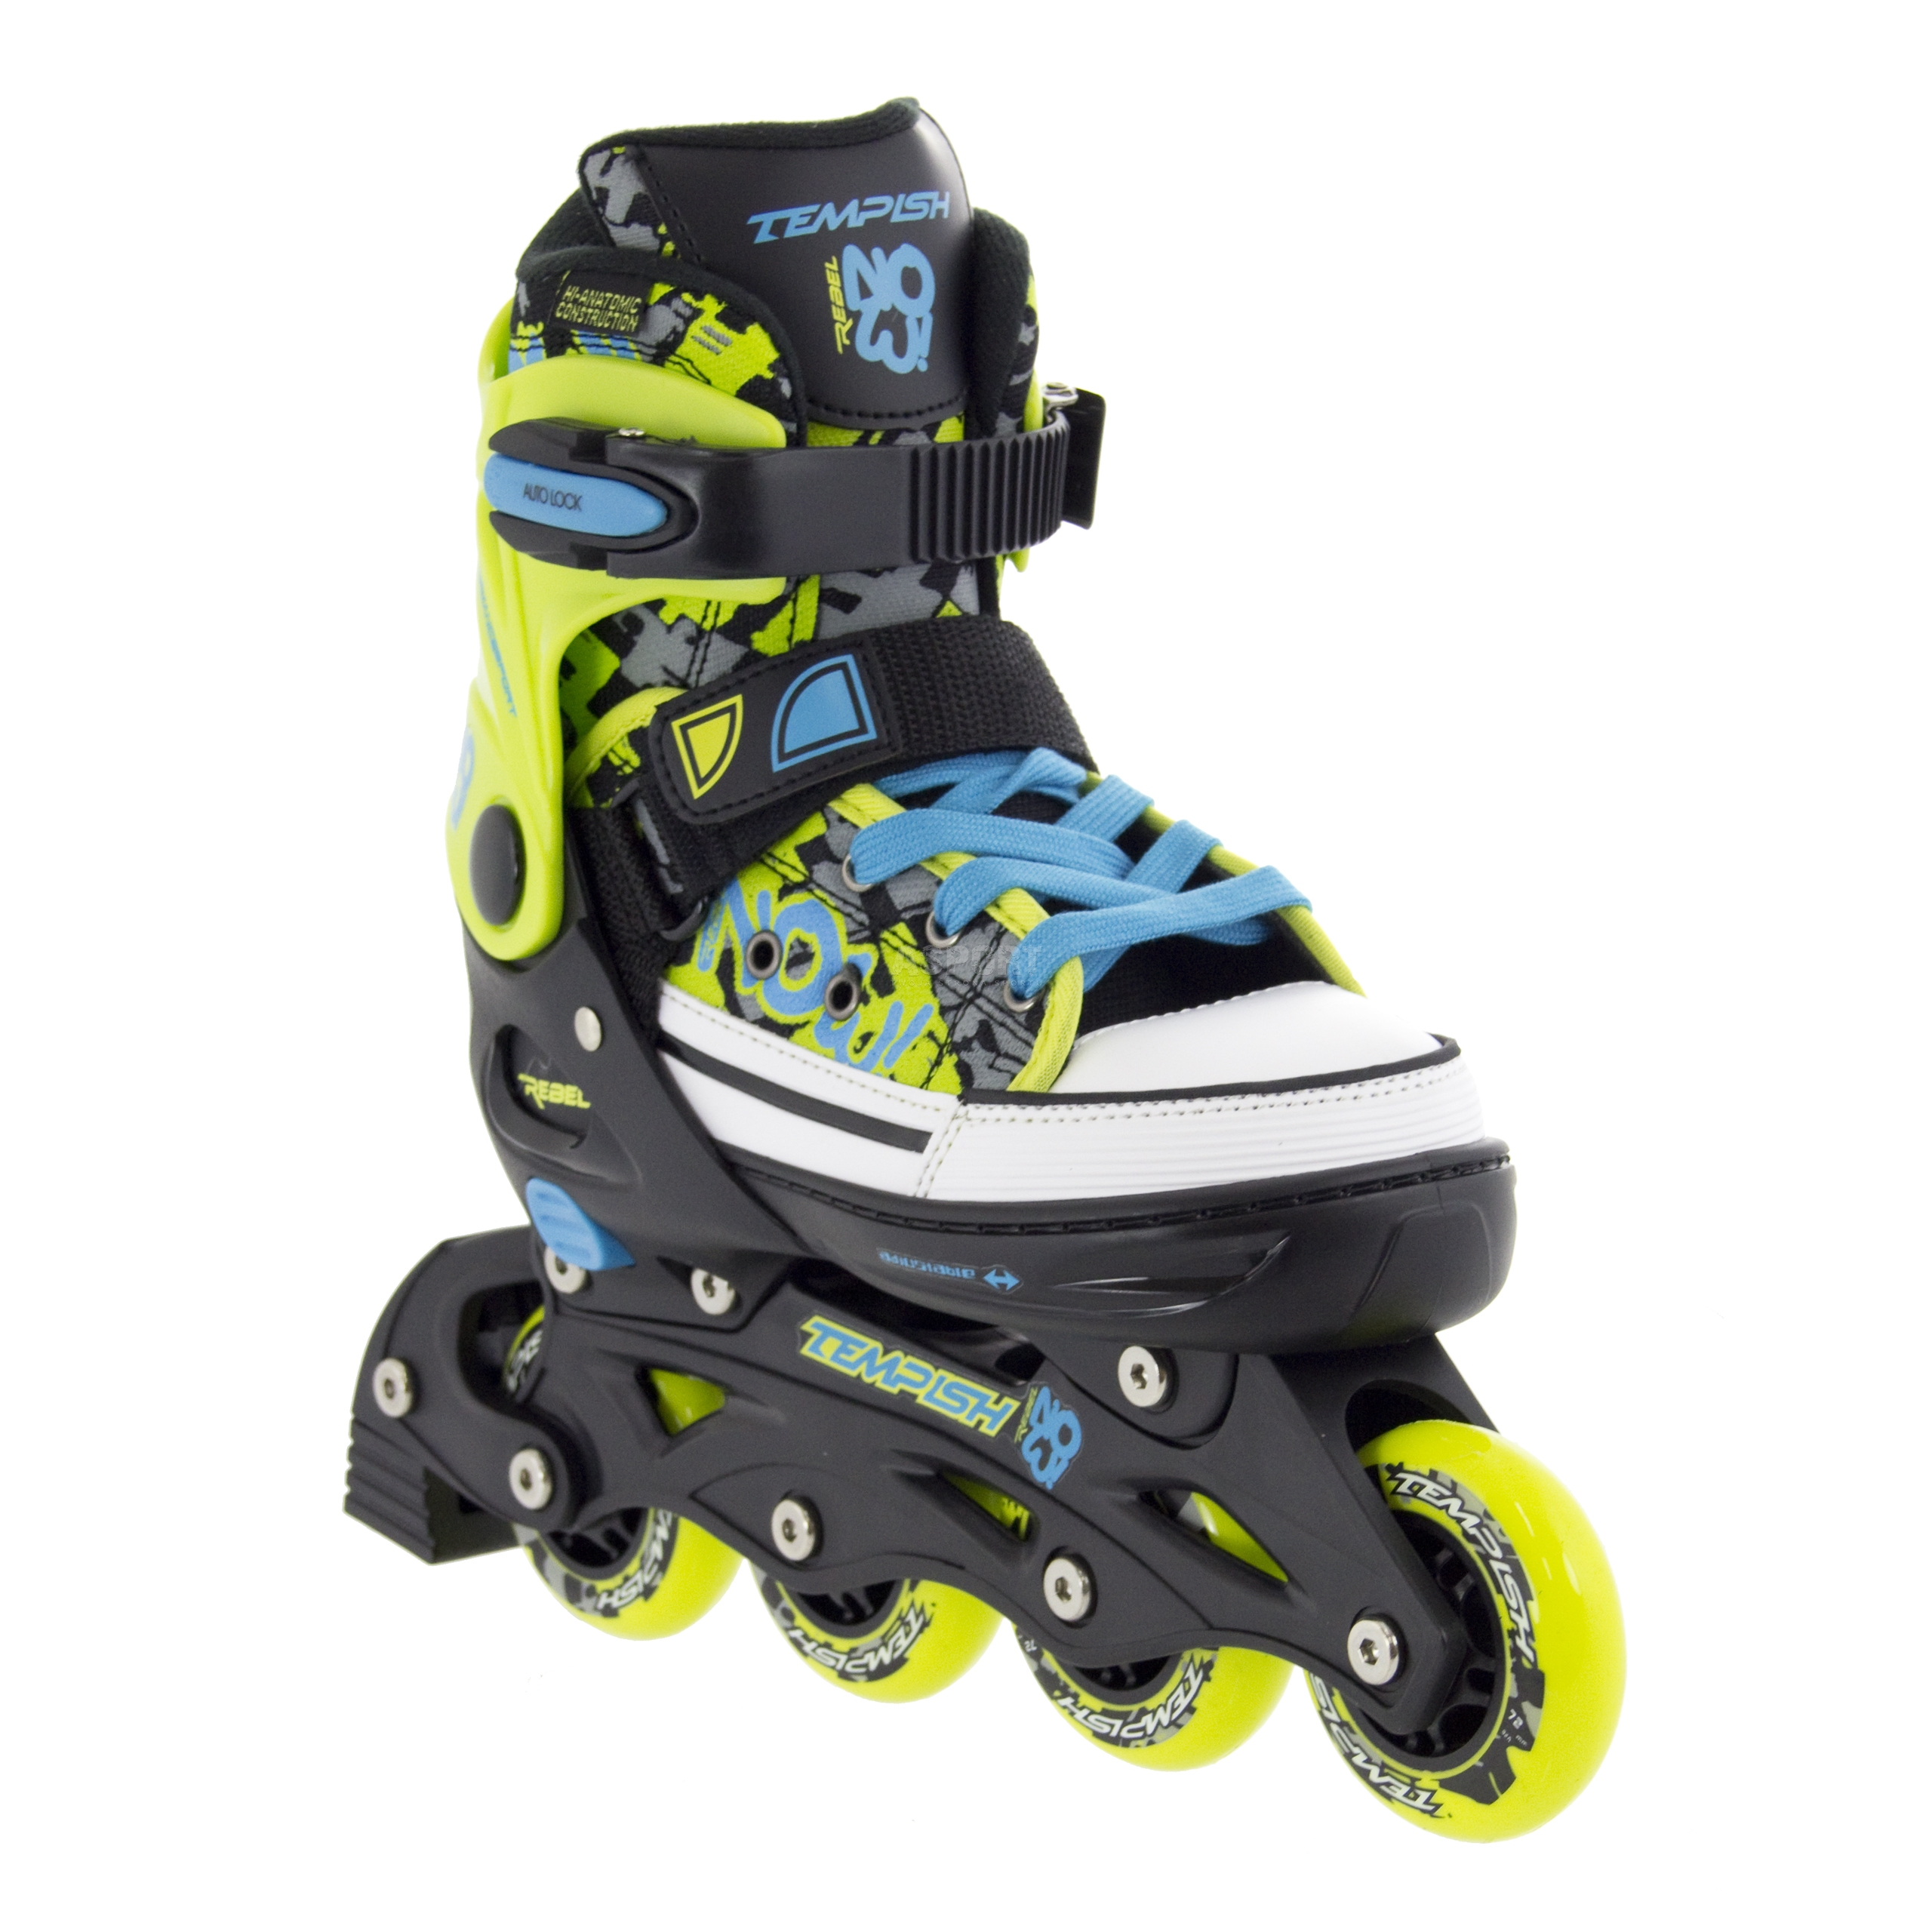 REBEL NOW Kinder TEMPISH Kinder NOW Inlineskates Inliner Inline-Skates größenverstellbar 4fe67a